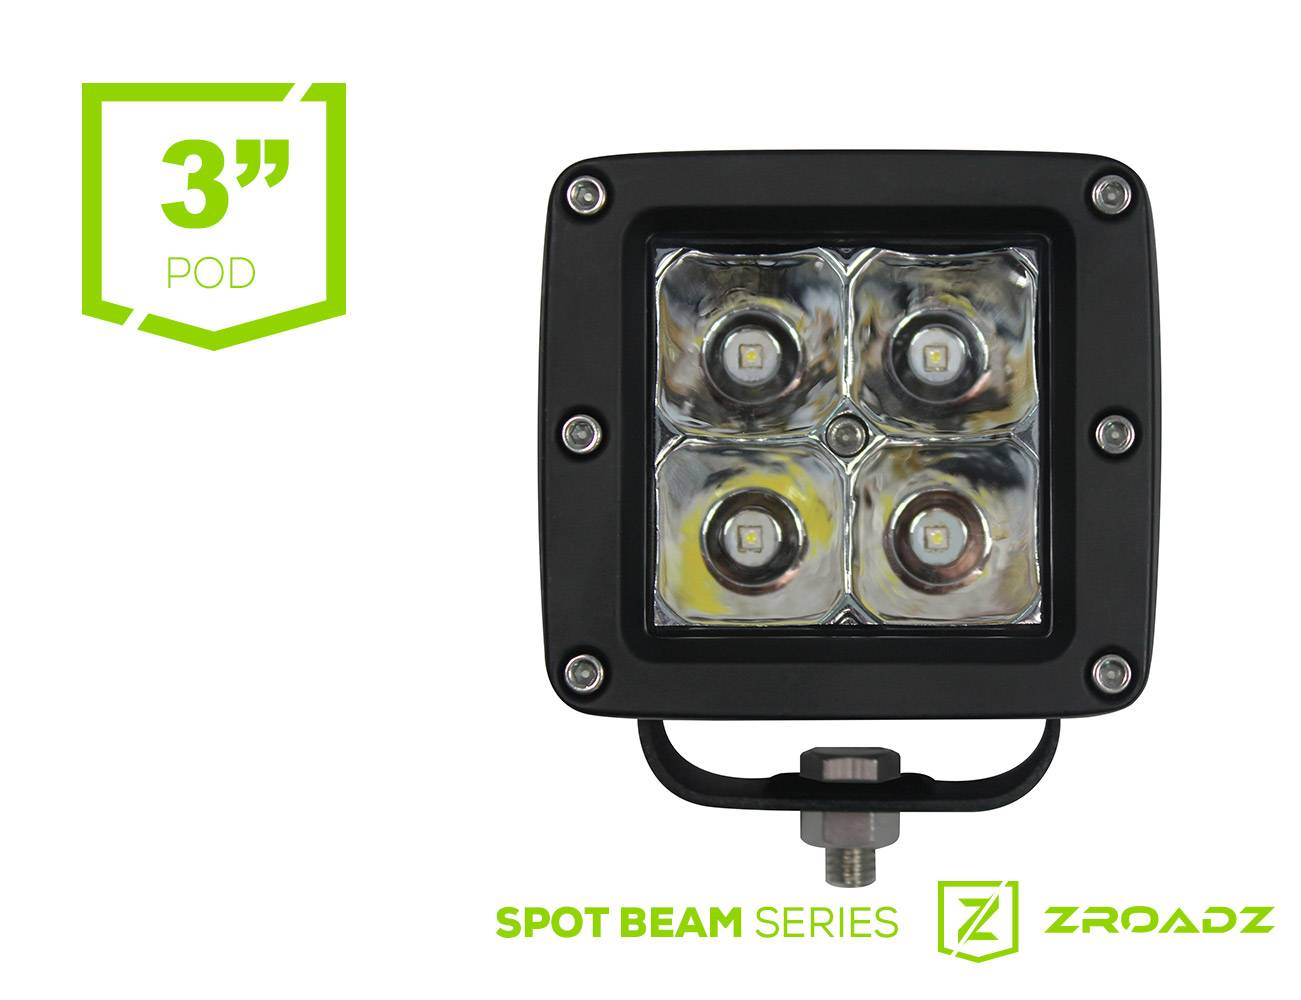 ZROADZ - (1) 3 Inch LED Flood Beam Pod Lights - PN #Z30BC14W20